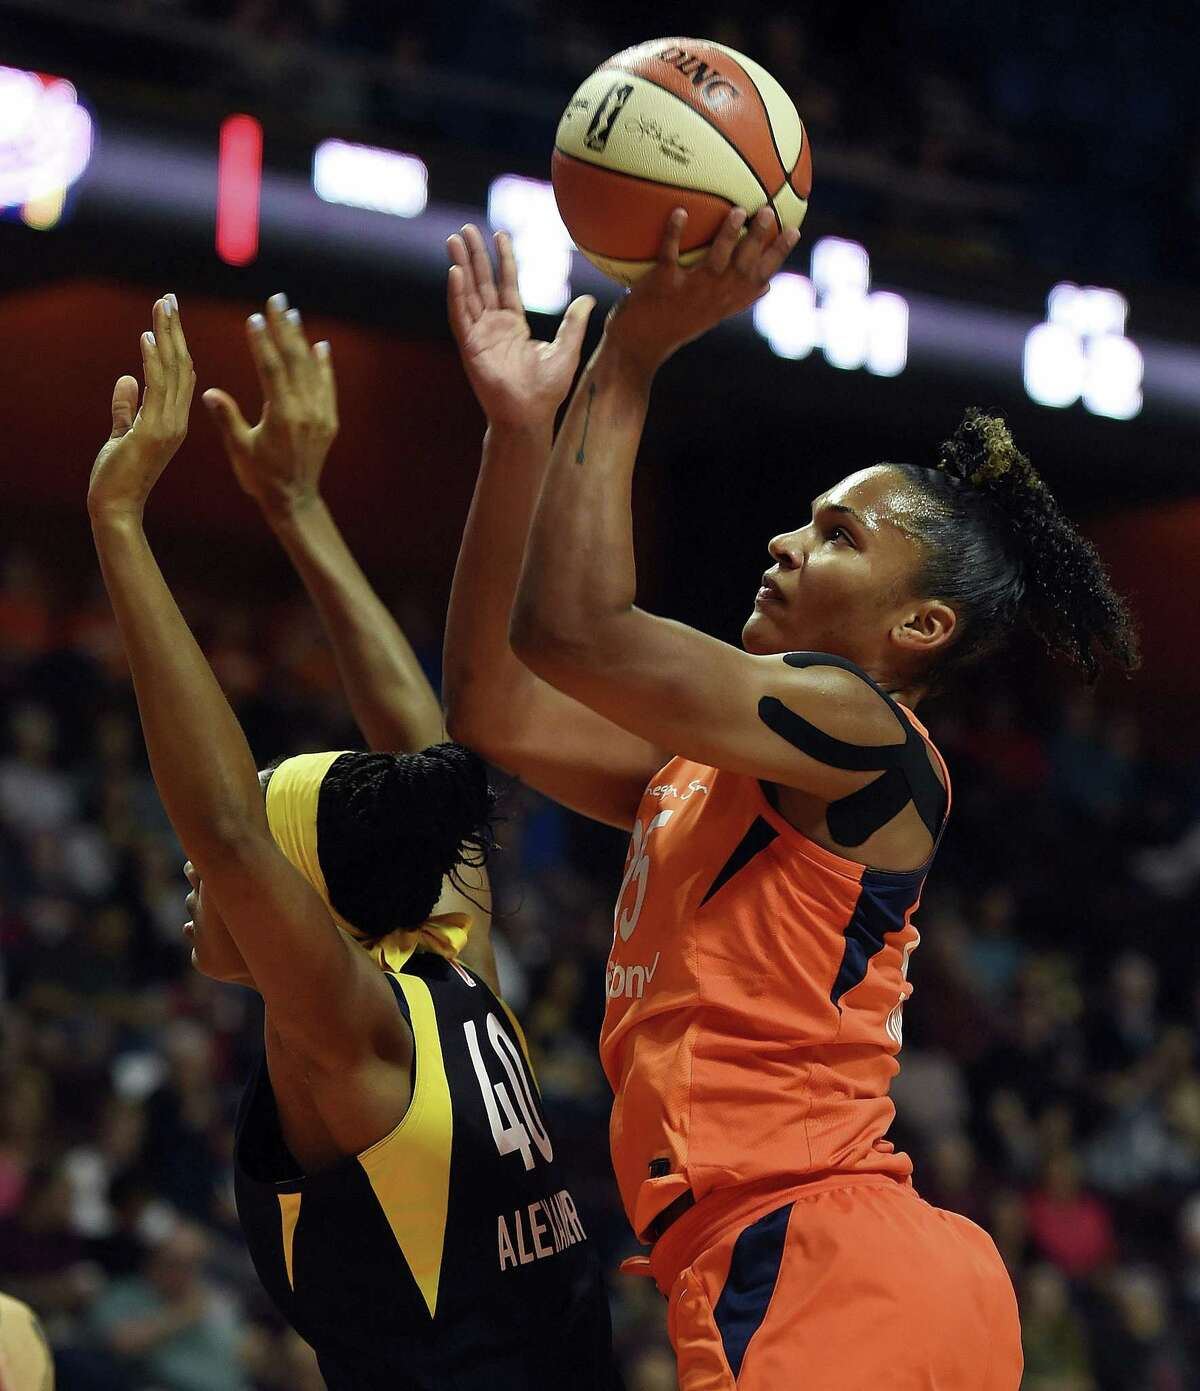 Connecticut Sun forward Alyssa Thomas shoots over Indiana Fever center Kayla Alexander during the first half of a WNBA game on May 26.